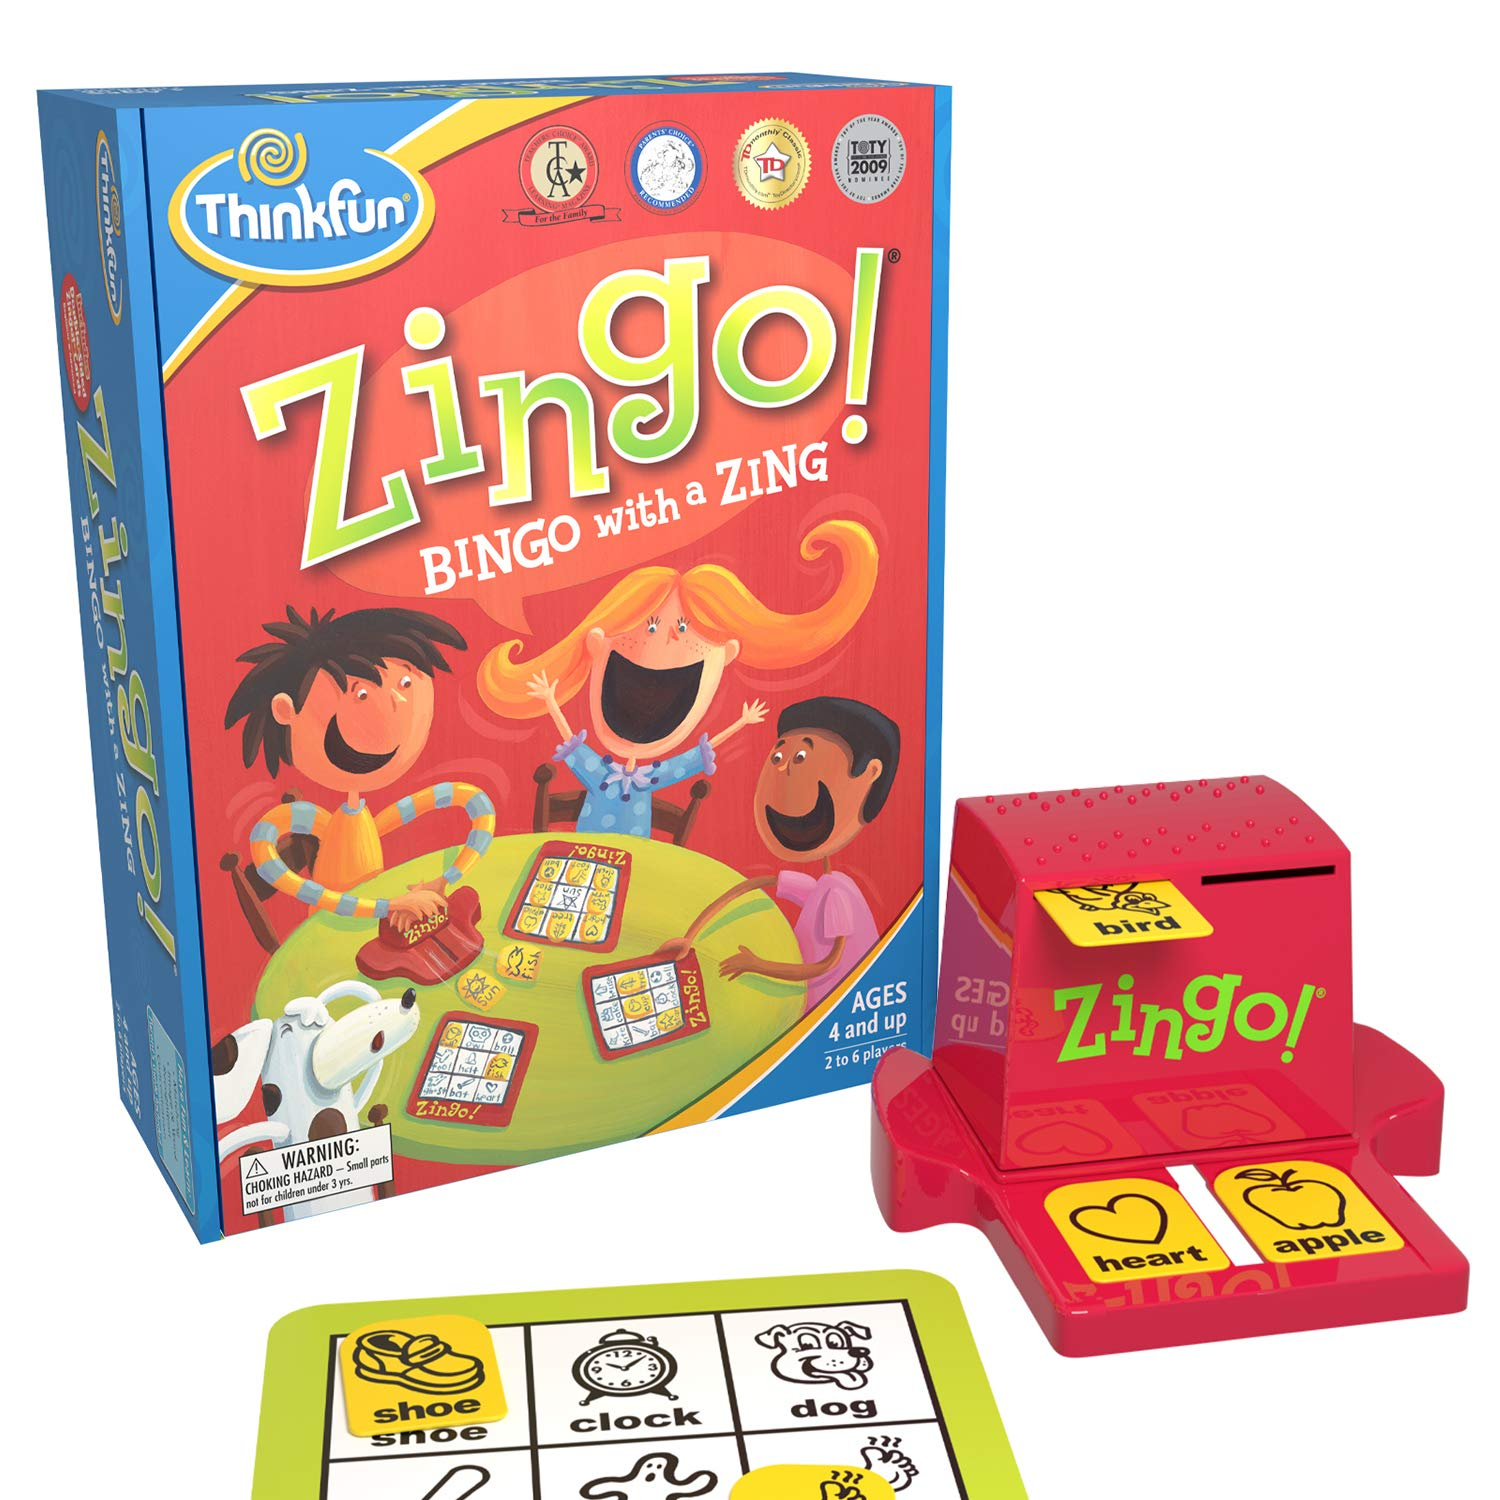 ThinkFun Zingo Bingo Award Winning Preschool Game for Pre-Readers and Early Readers Age 4 and Up - One of the Most Popular Board Games for Boys and Girls and their Parents Amazon Exclusive Version